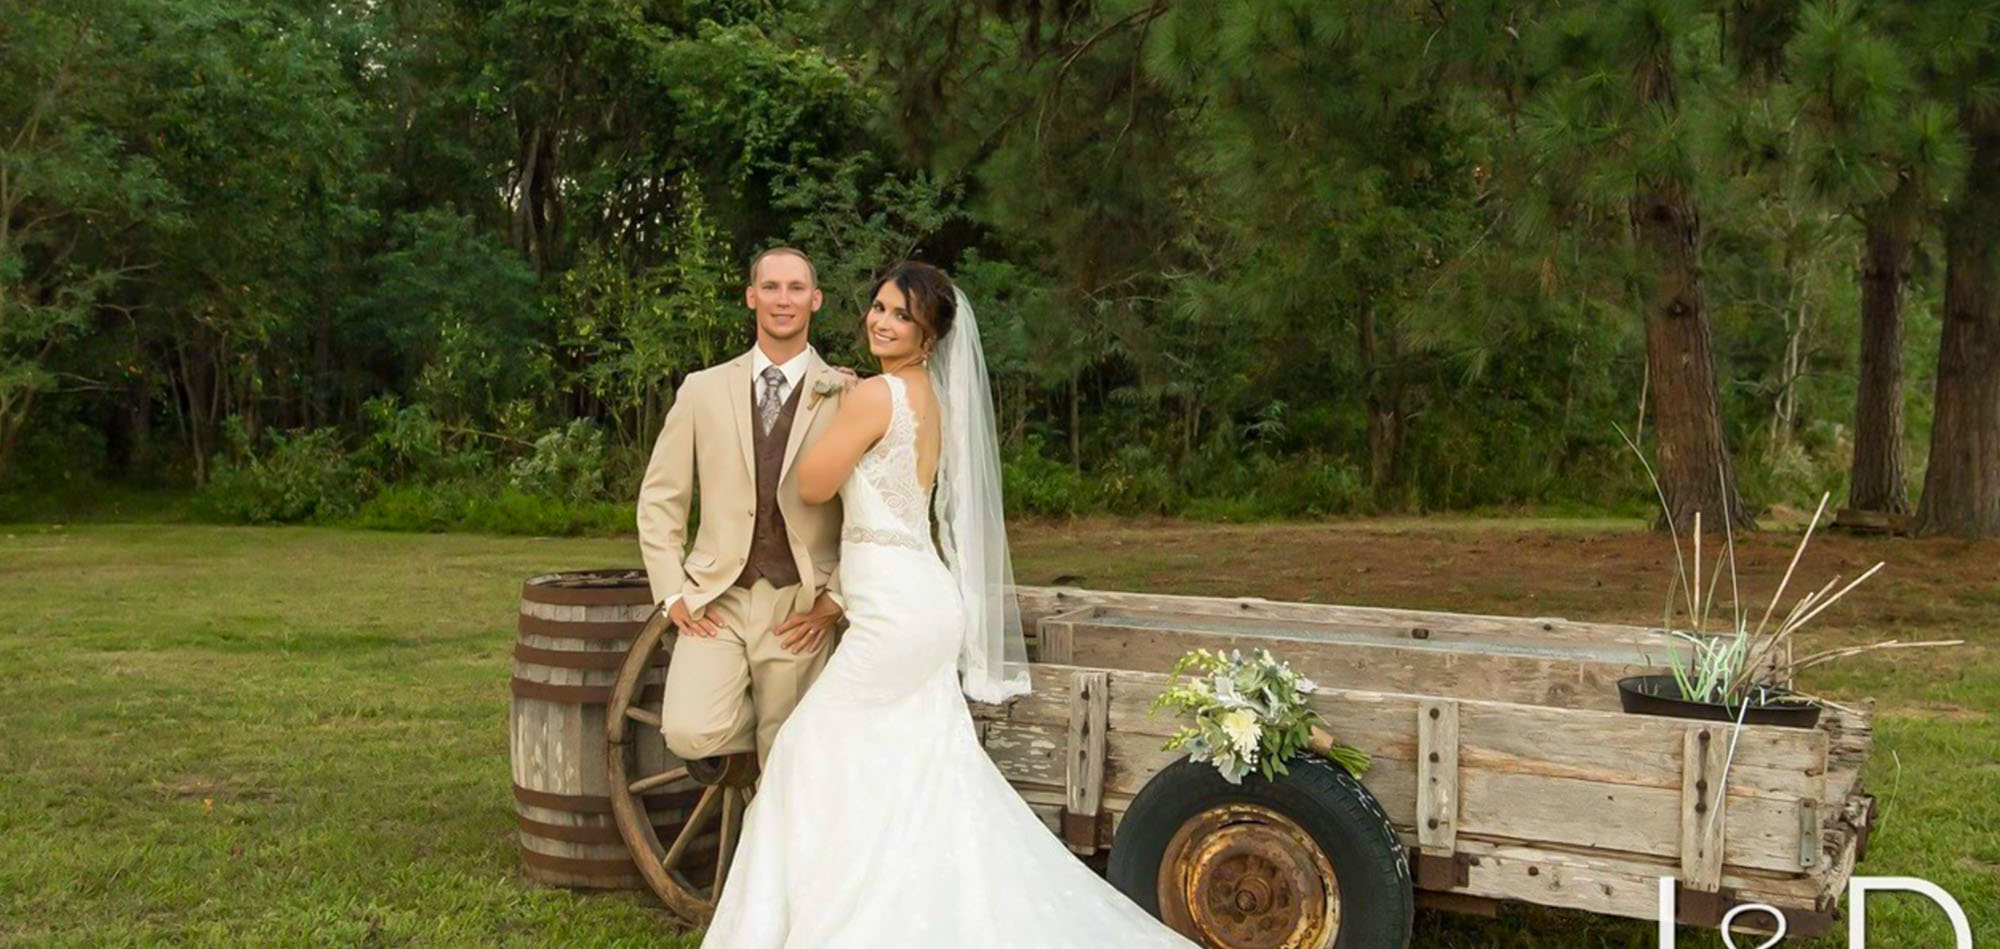 outdoor wedding venue near me with ranch and a barn